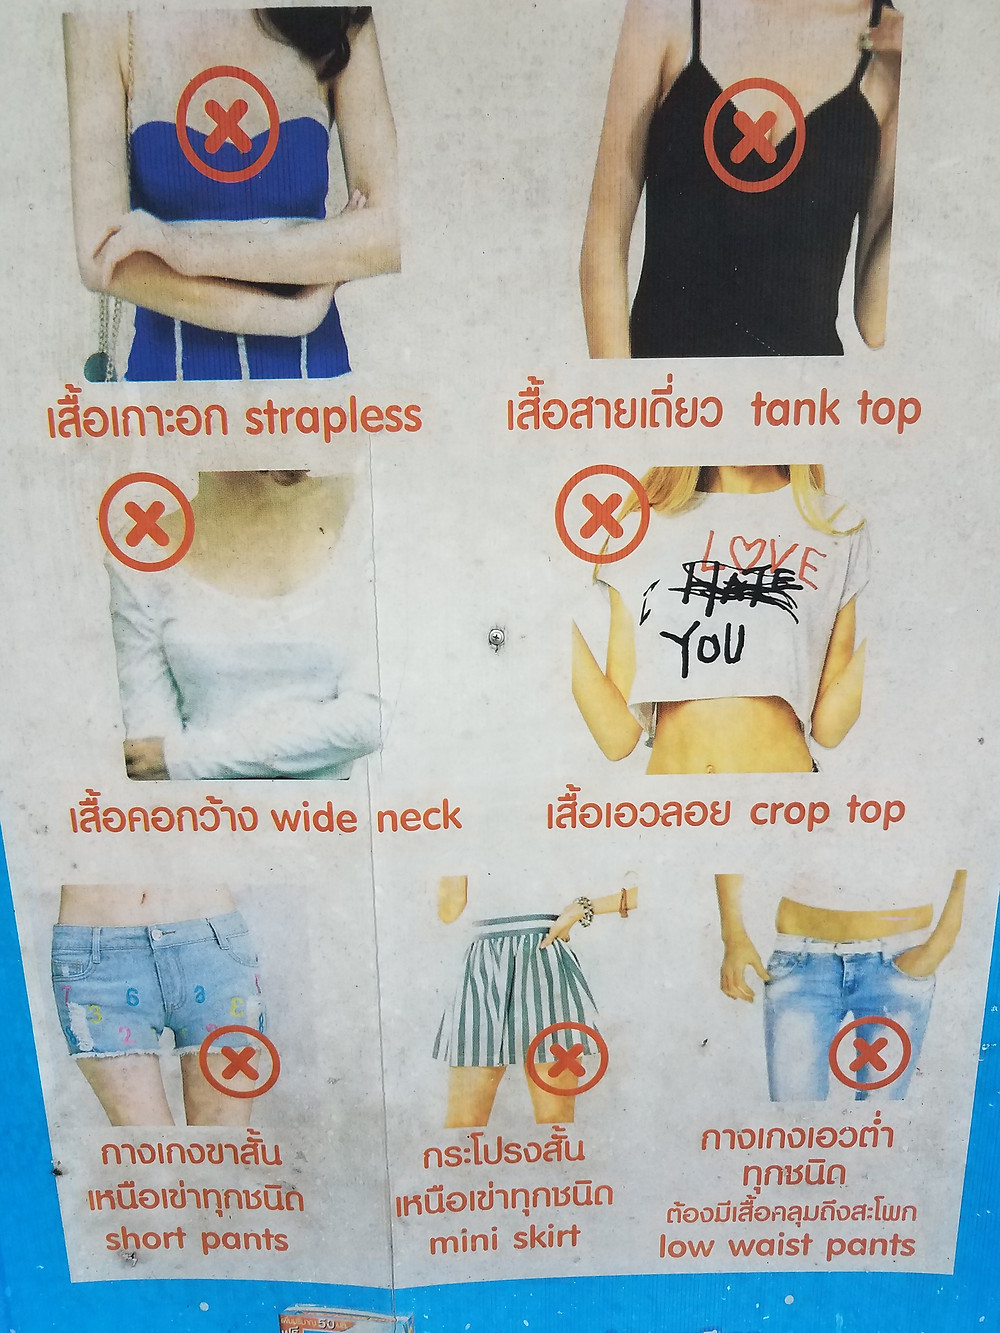 Temple Dress Code Sign in Thailand